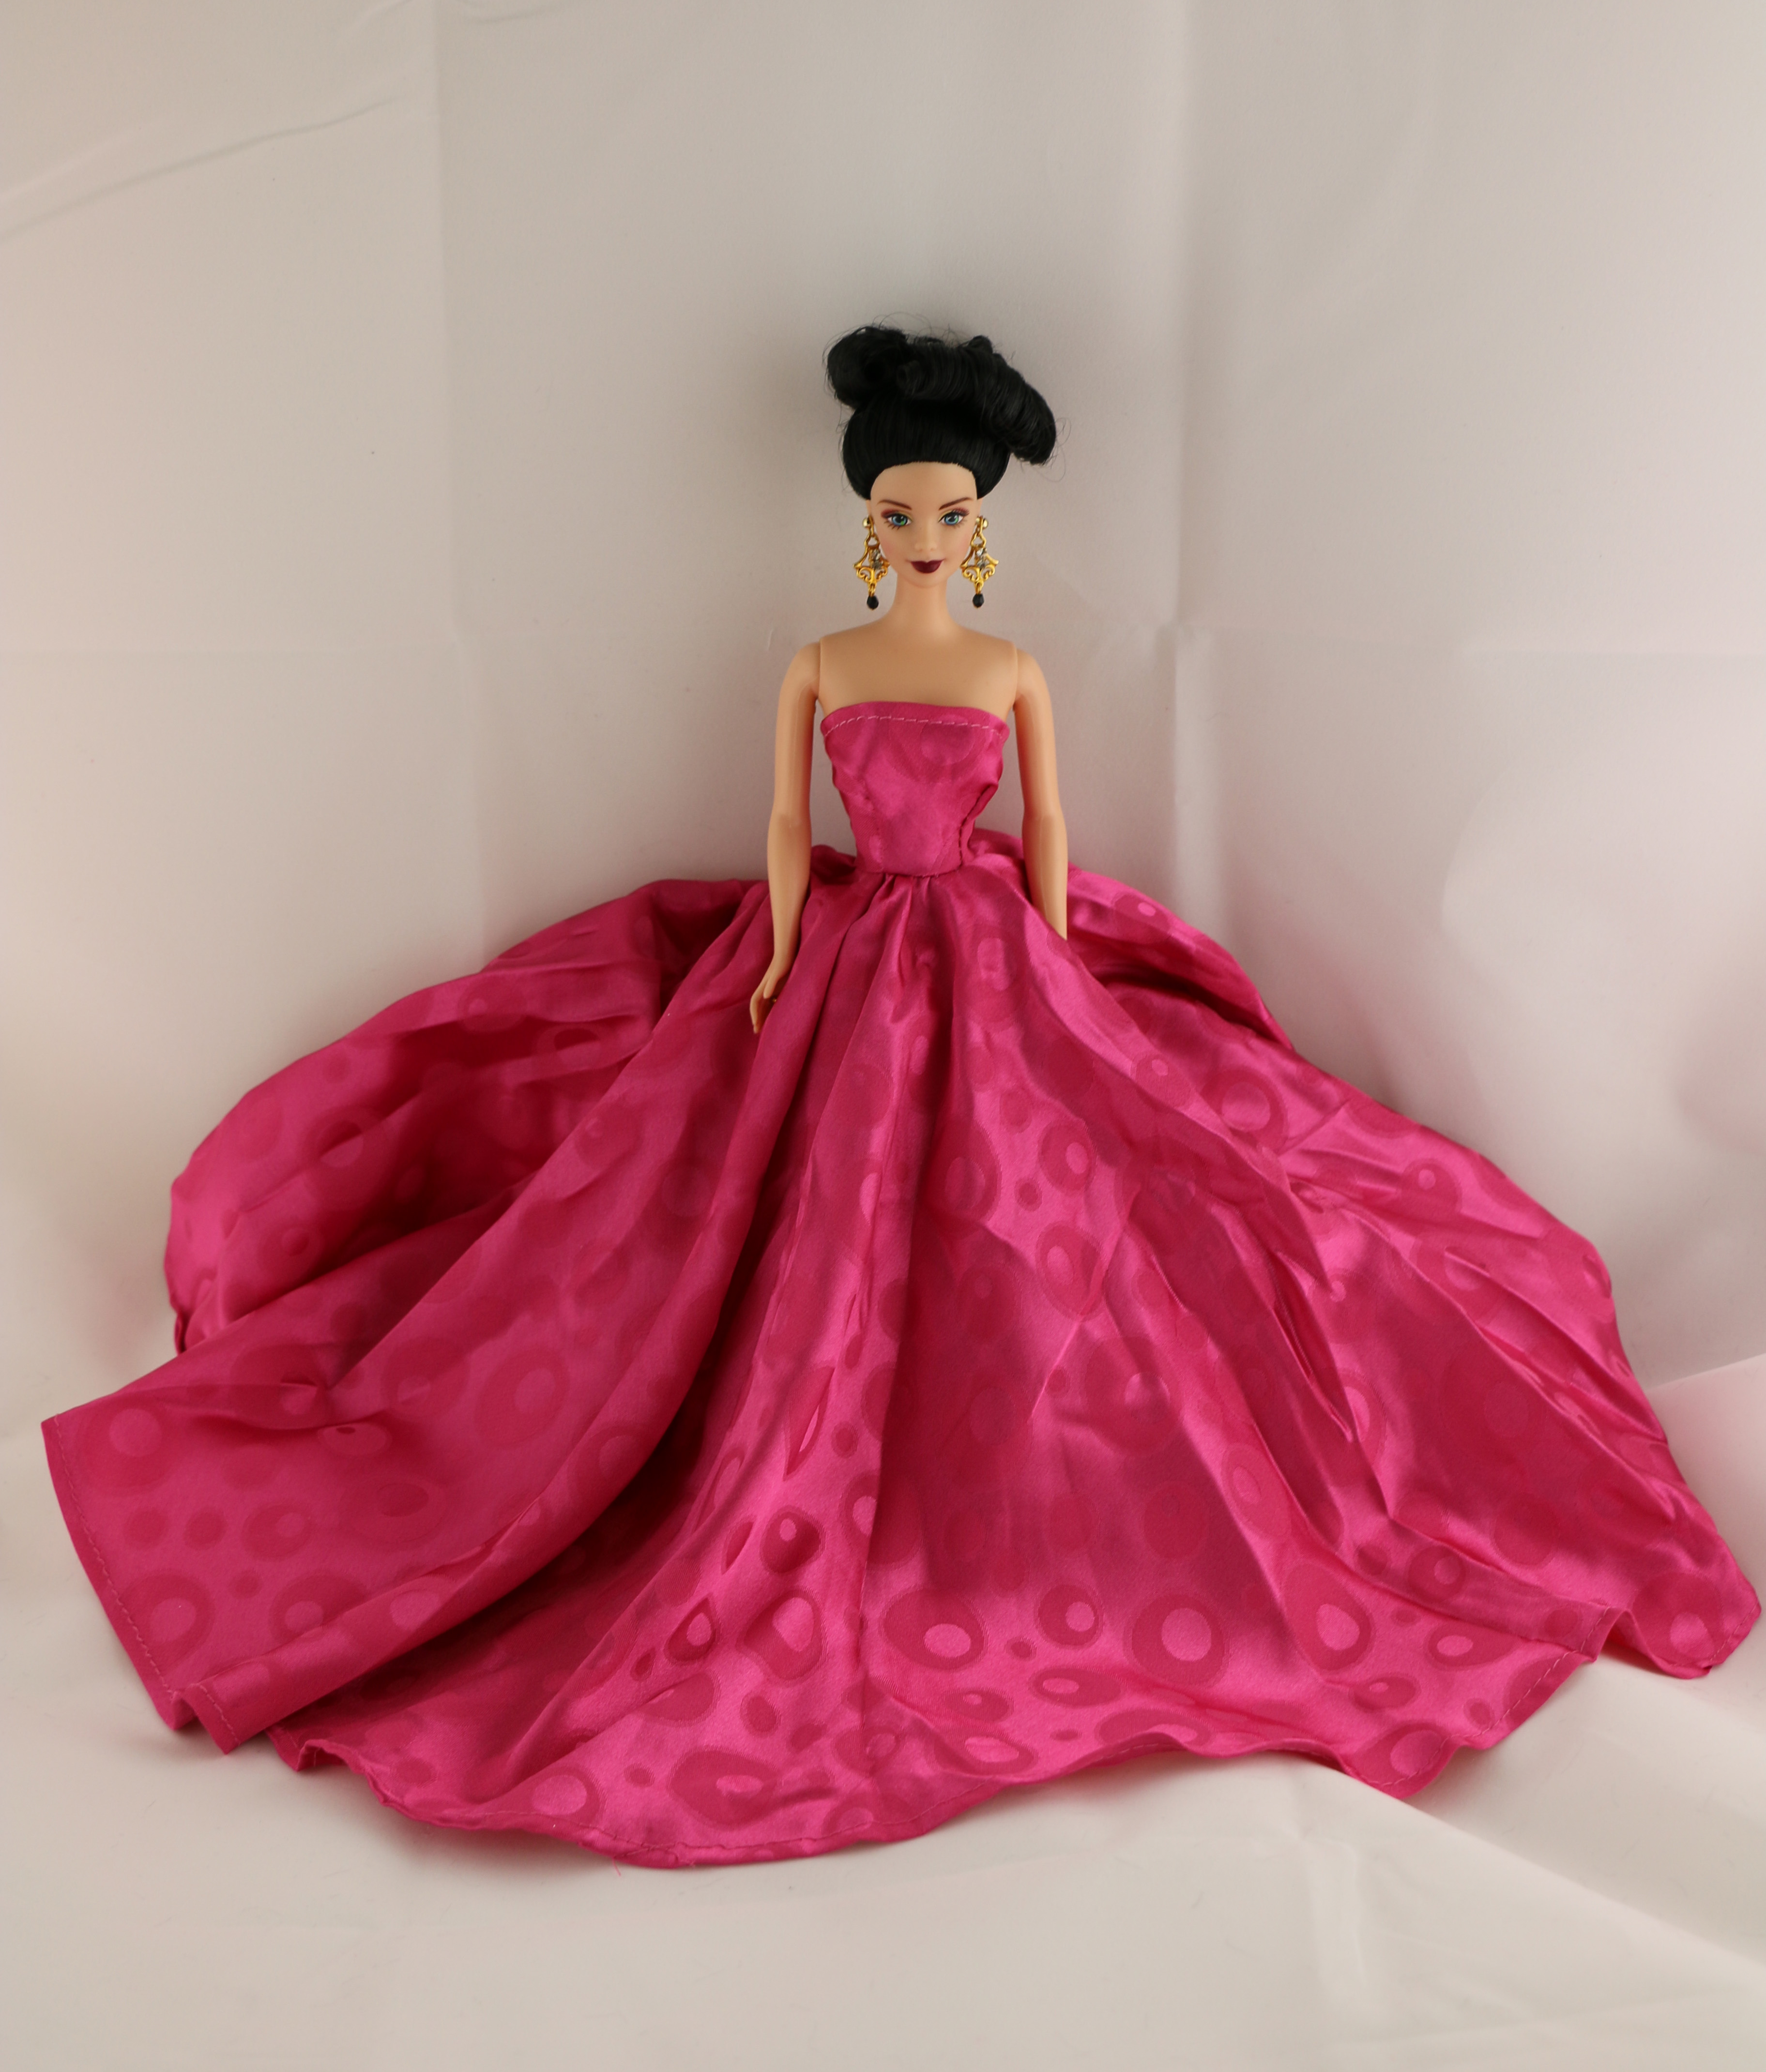 A Long Gown in Bold Pink with a Circle Patterned Fabric Made to Fit Barbie Doll